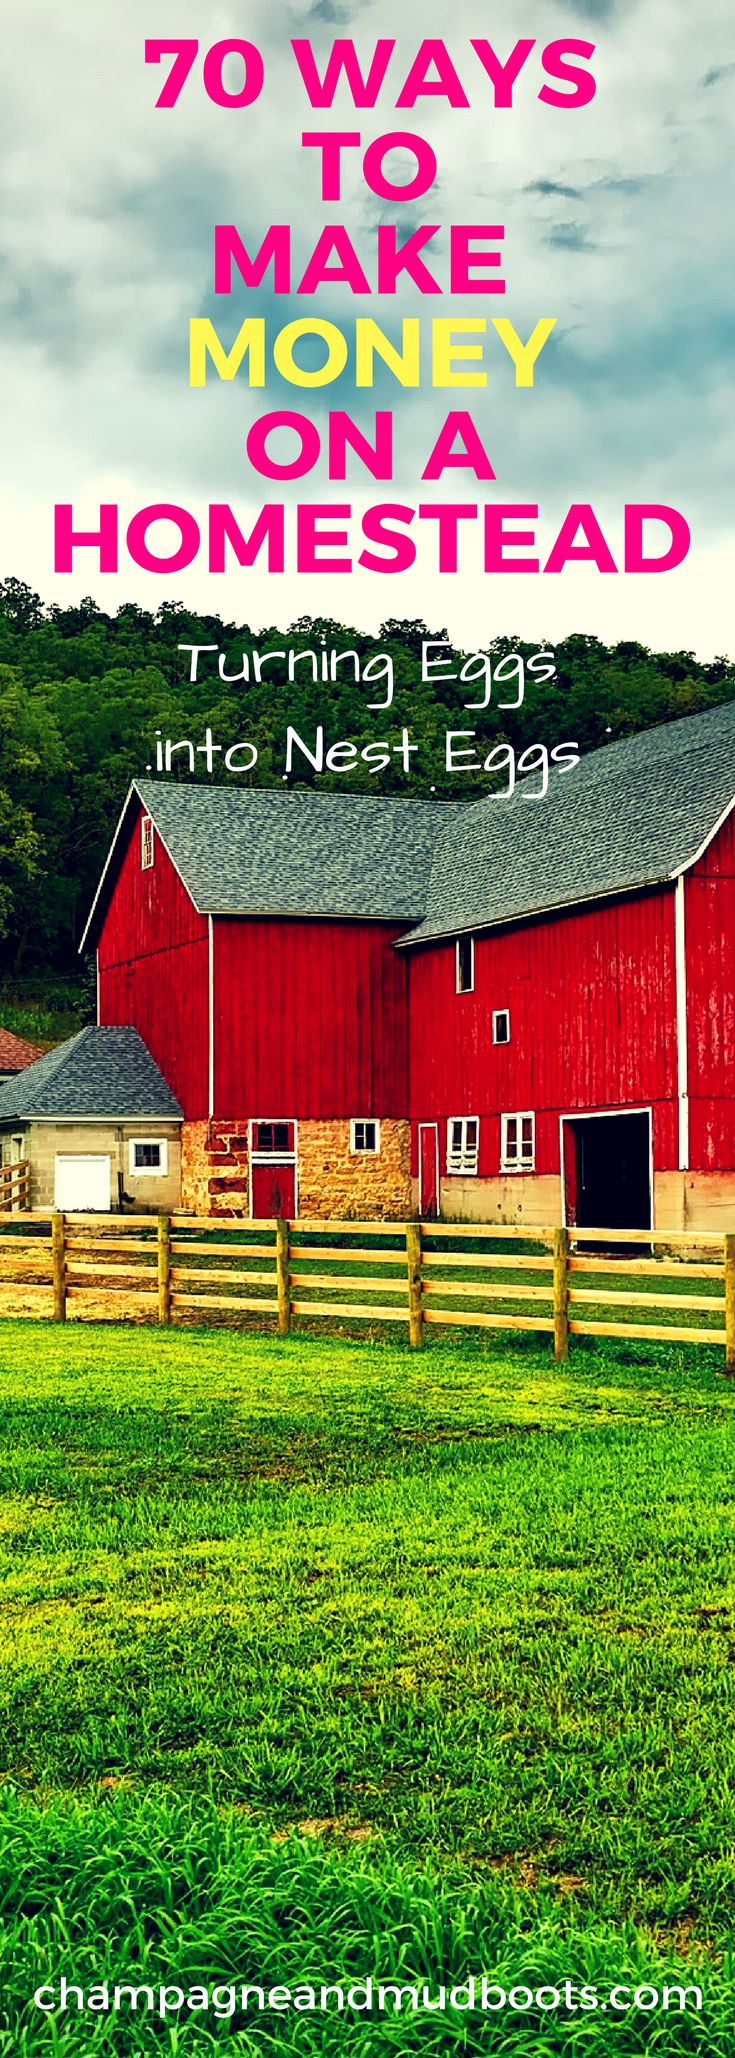 Ideas to generate an income and make money on a homestead so that it is a profitable life style choice even on a small homestead.